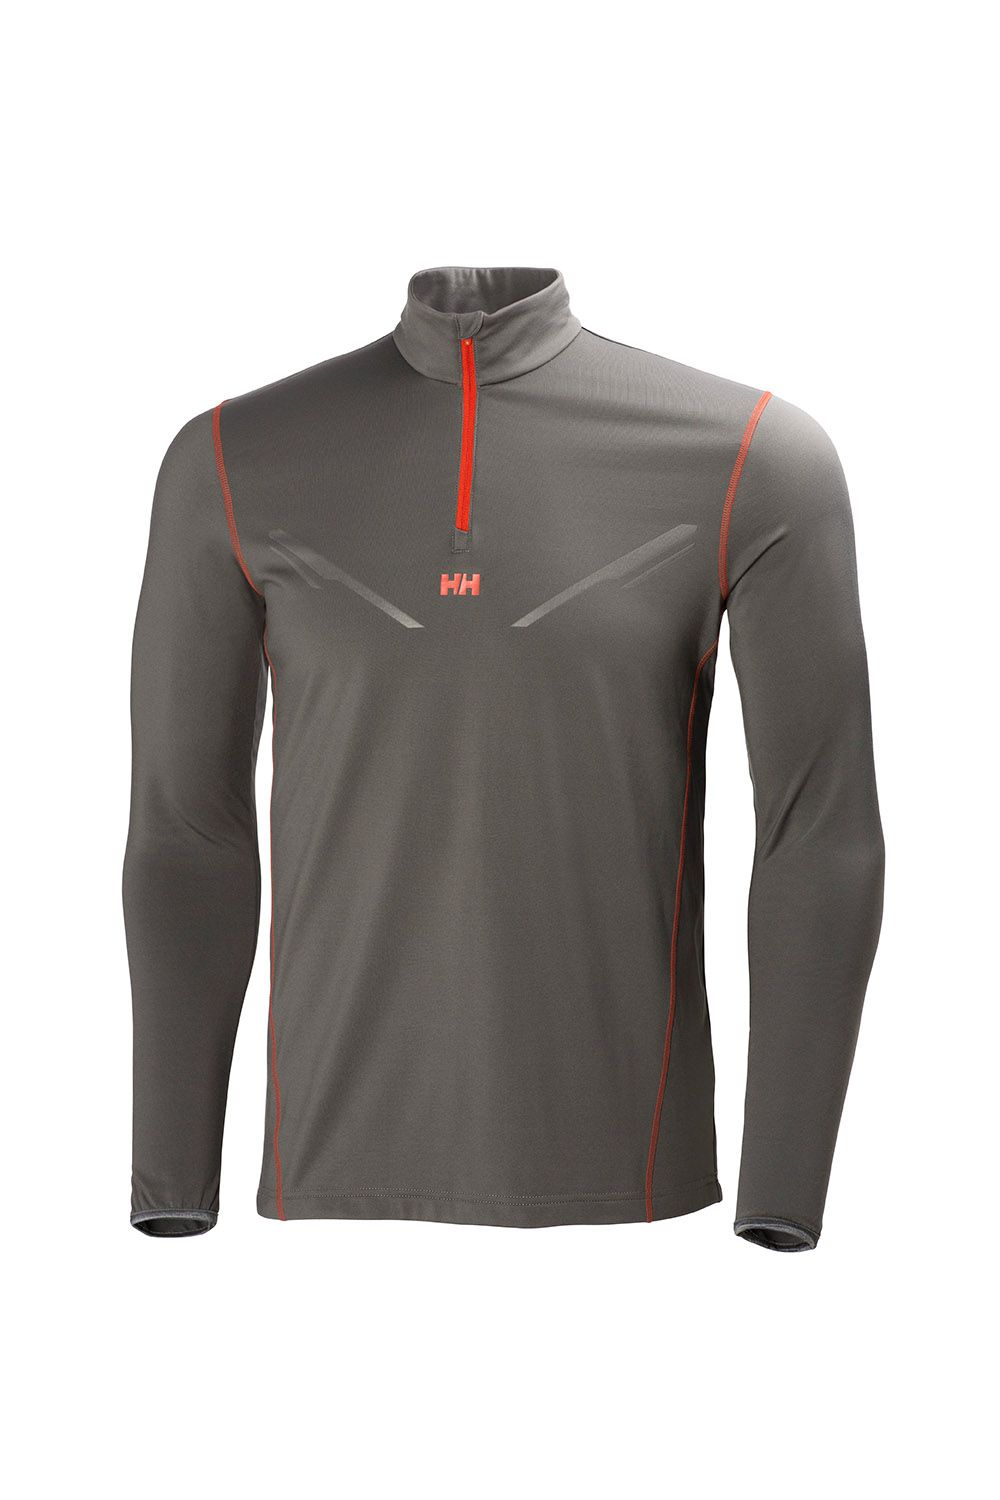 Helly Hansen Men's Phantom 1/2 Zip Midlayer